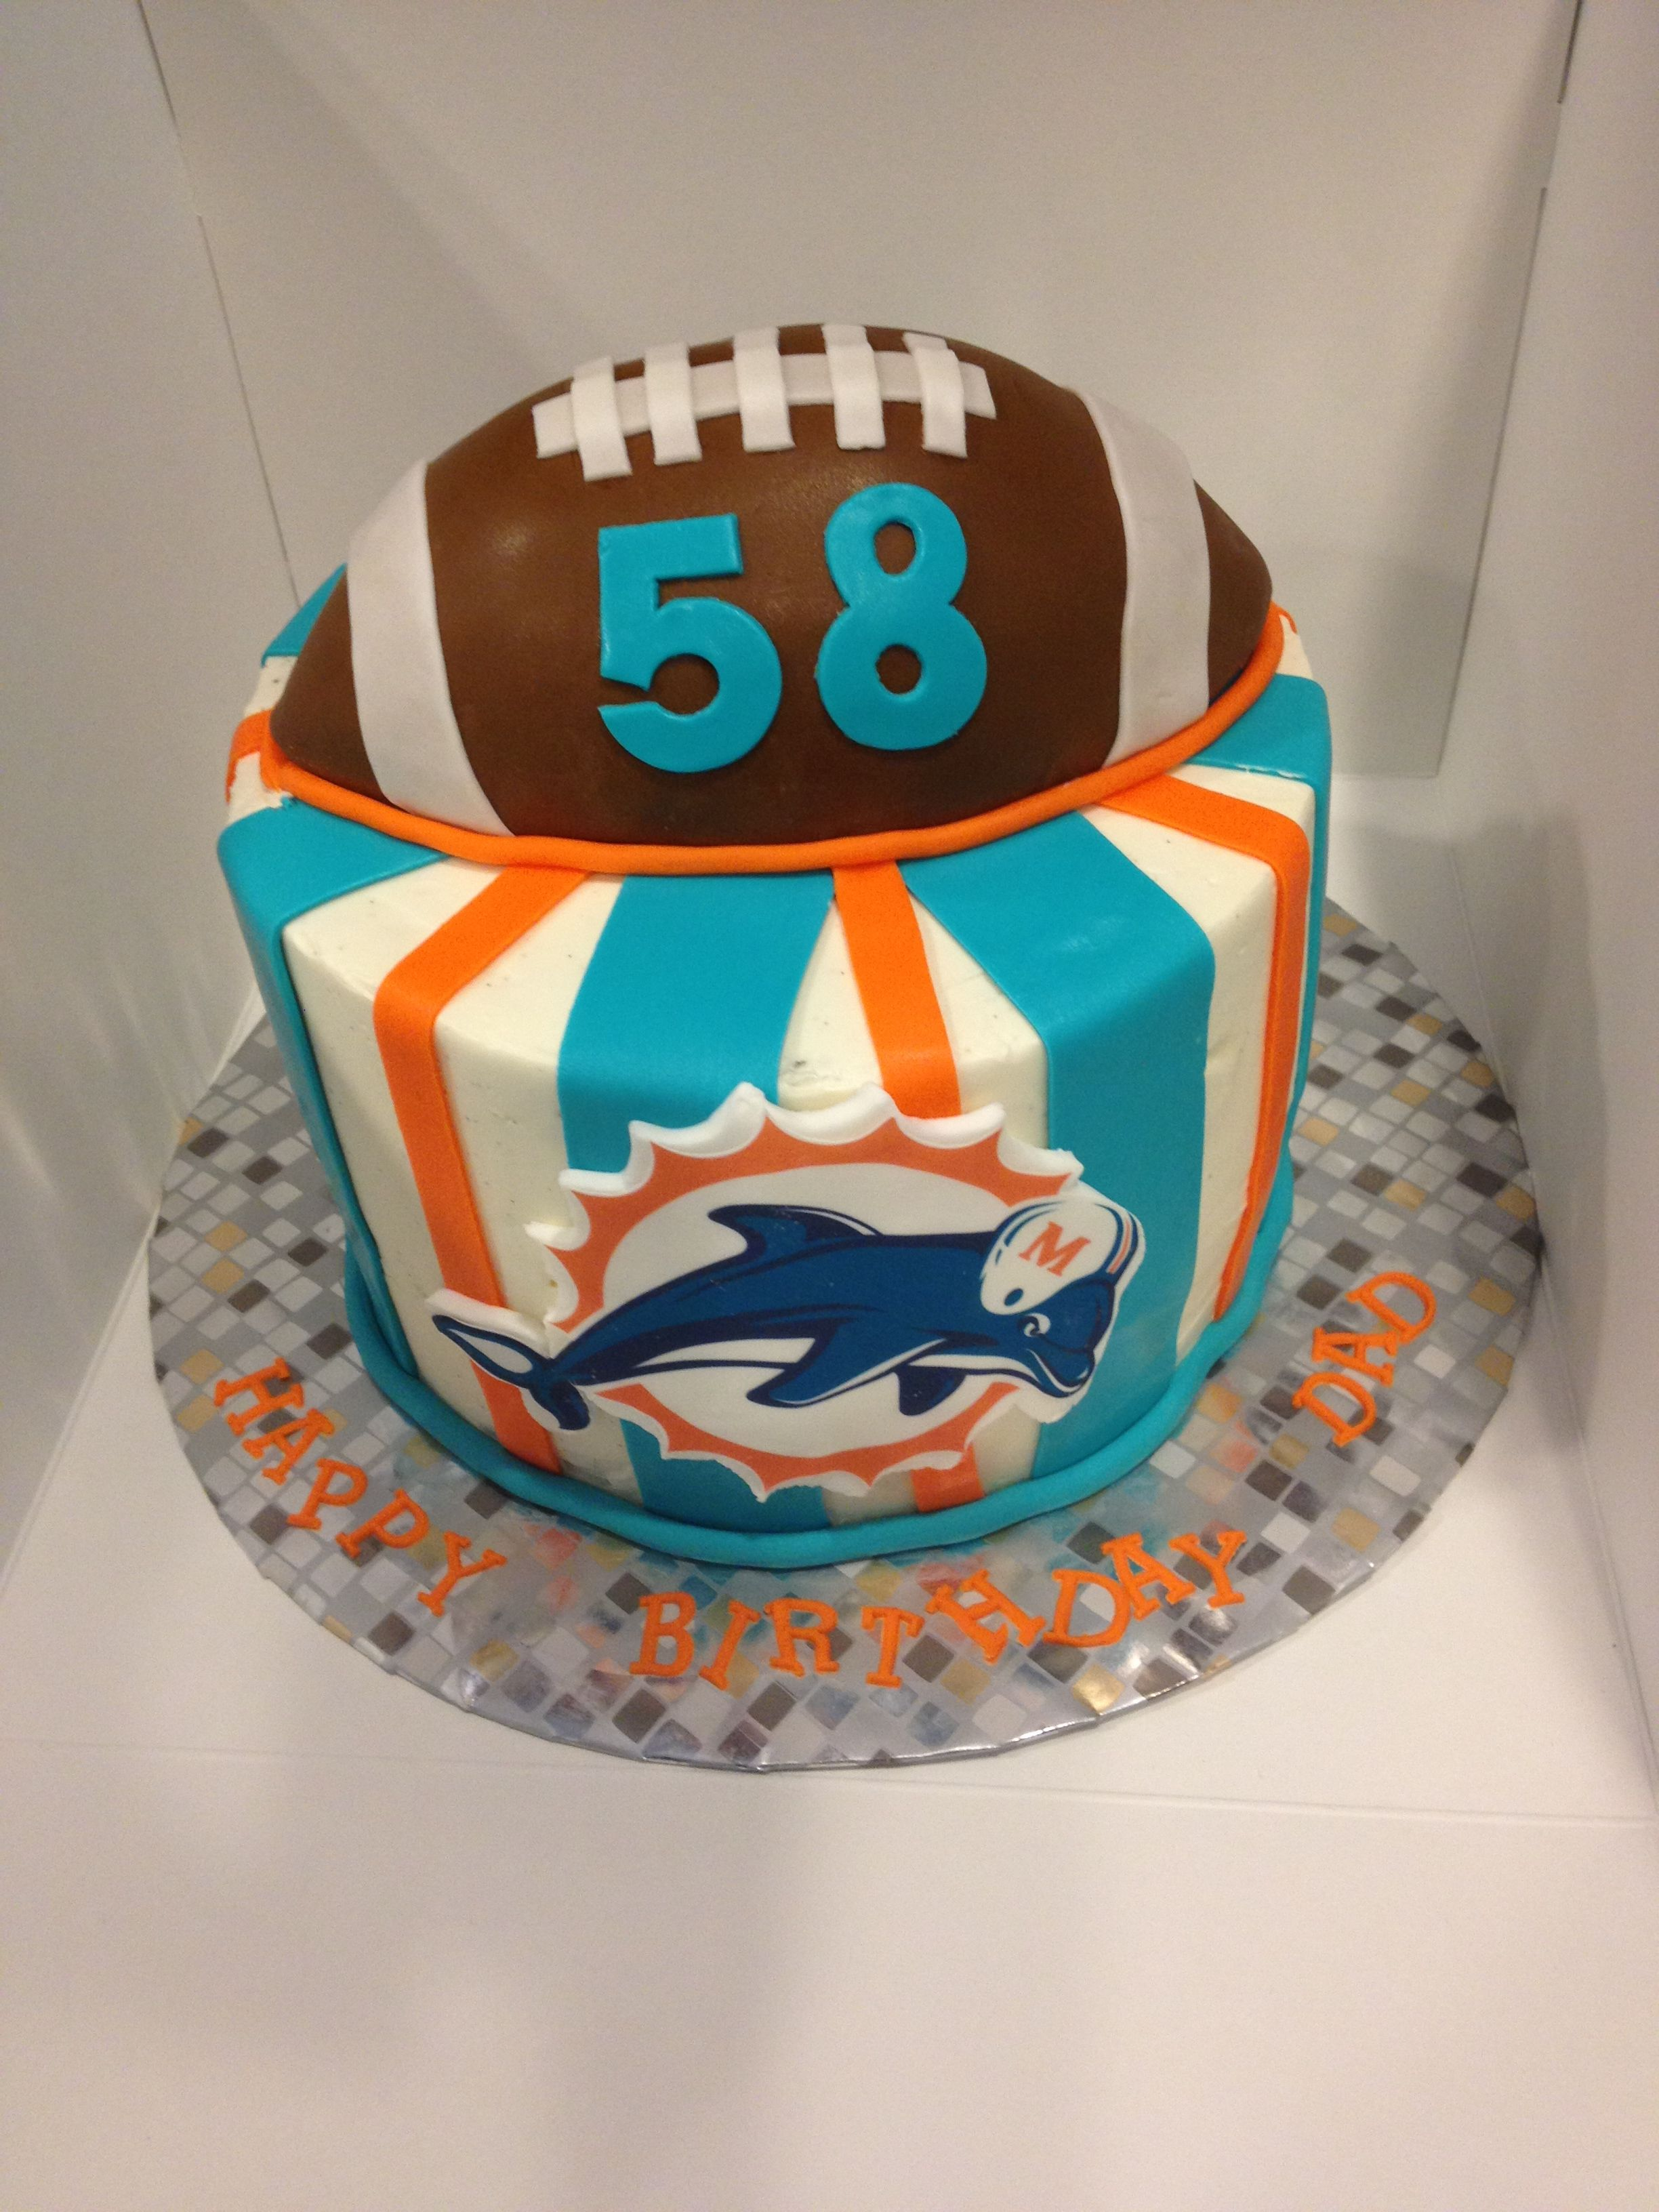 Miami Dolphins Cake For Dad S Bday Miami Dolphins Cake Dolphin Cakes Sports Themed Cakes